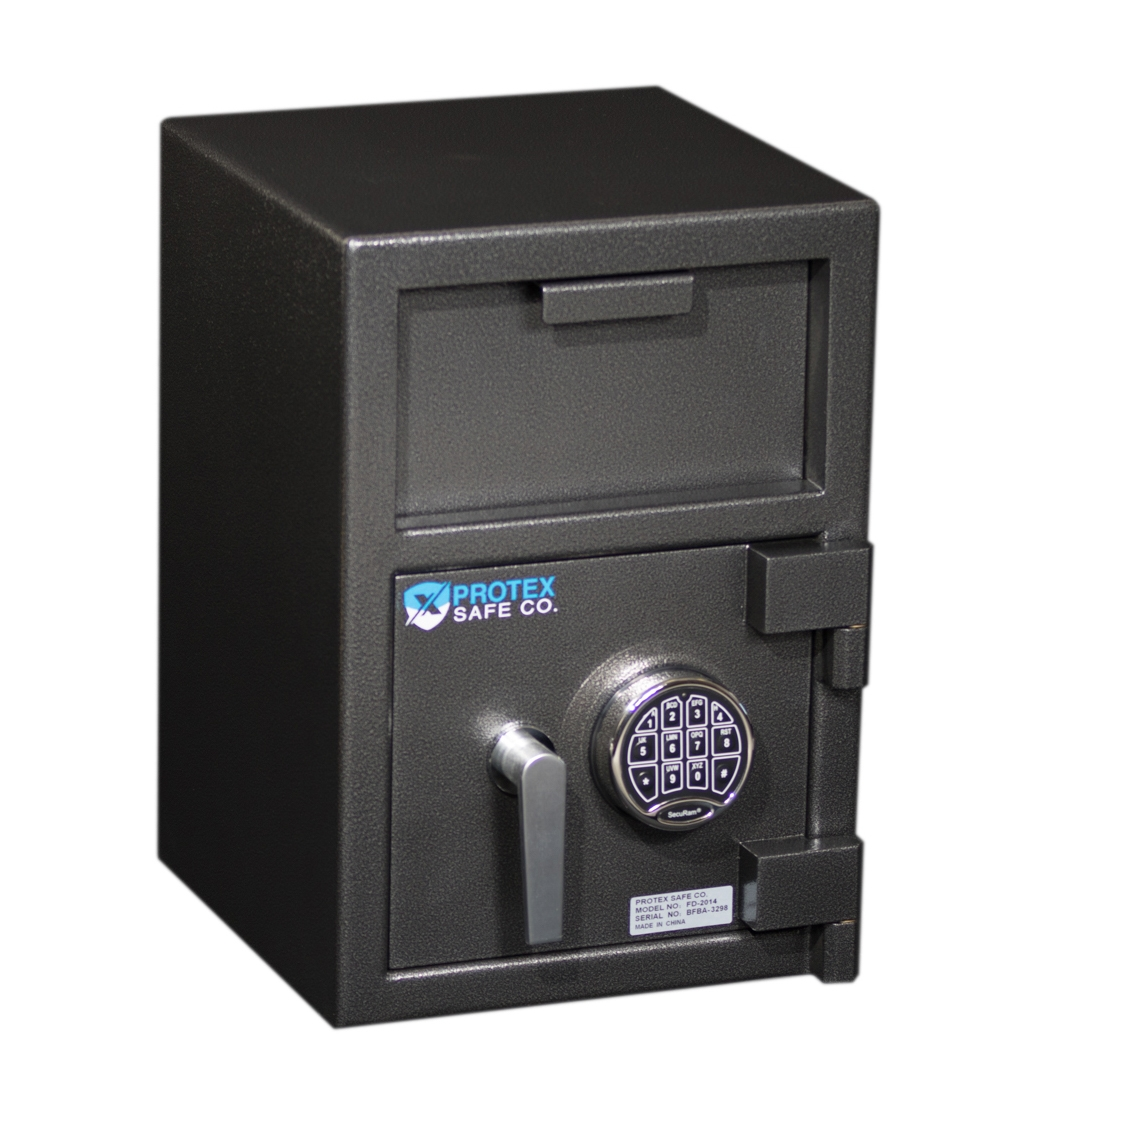 Protex FD-2014 Safe-B-rated Front Depository Safe - GSFD-2014